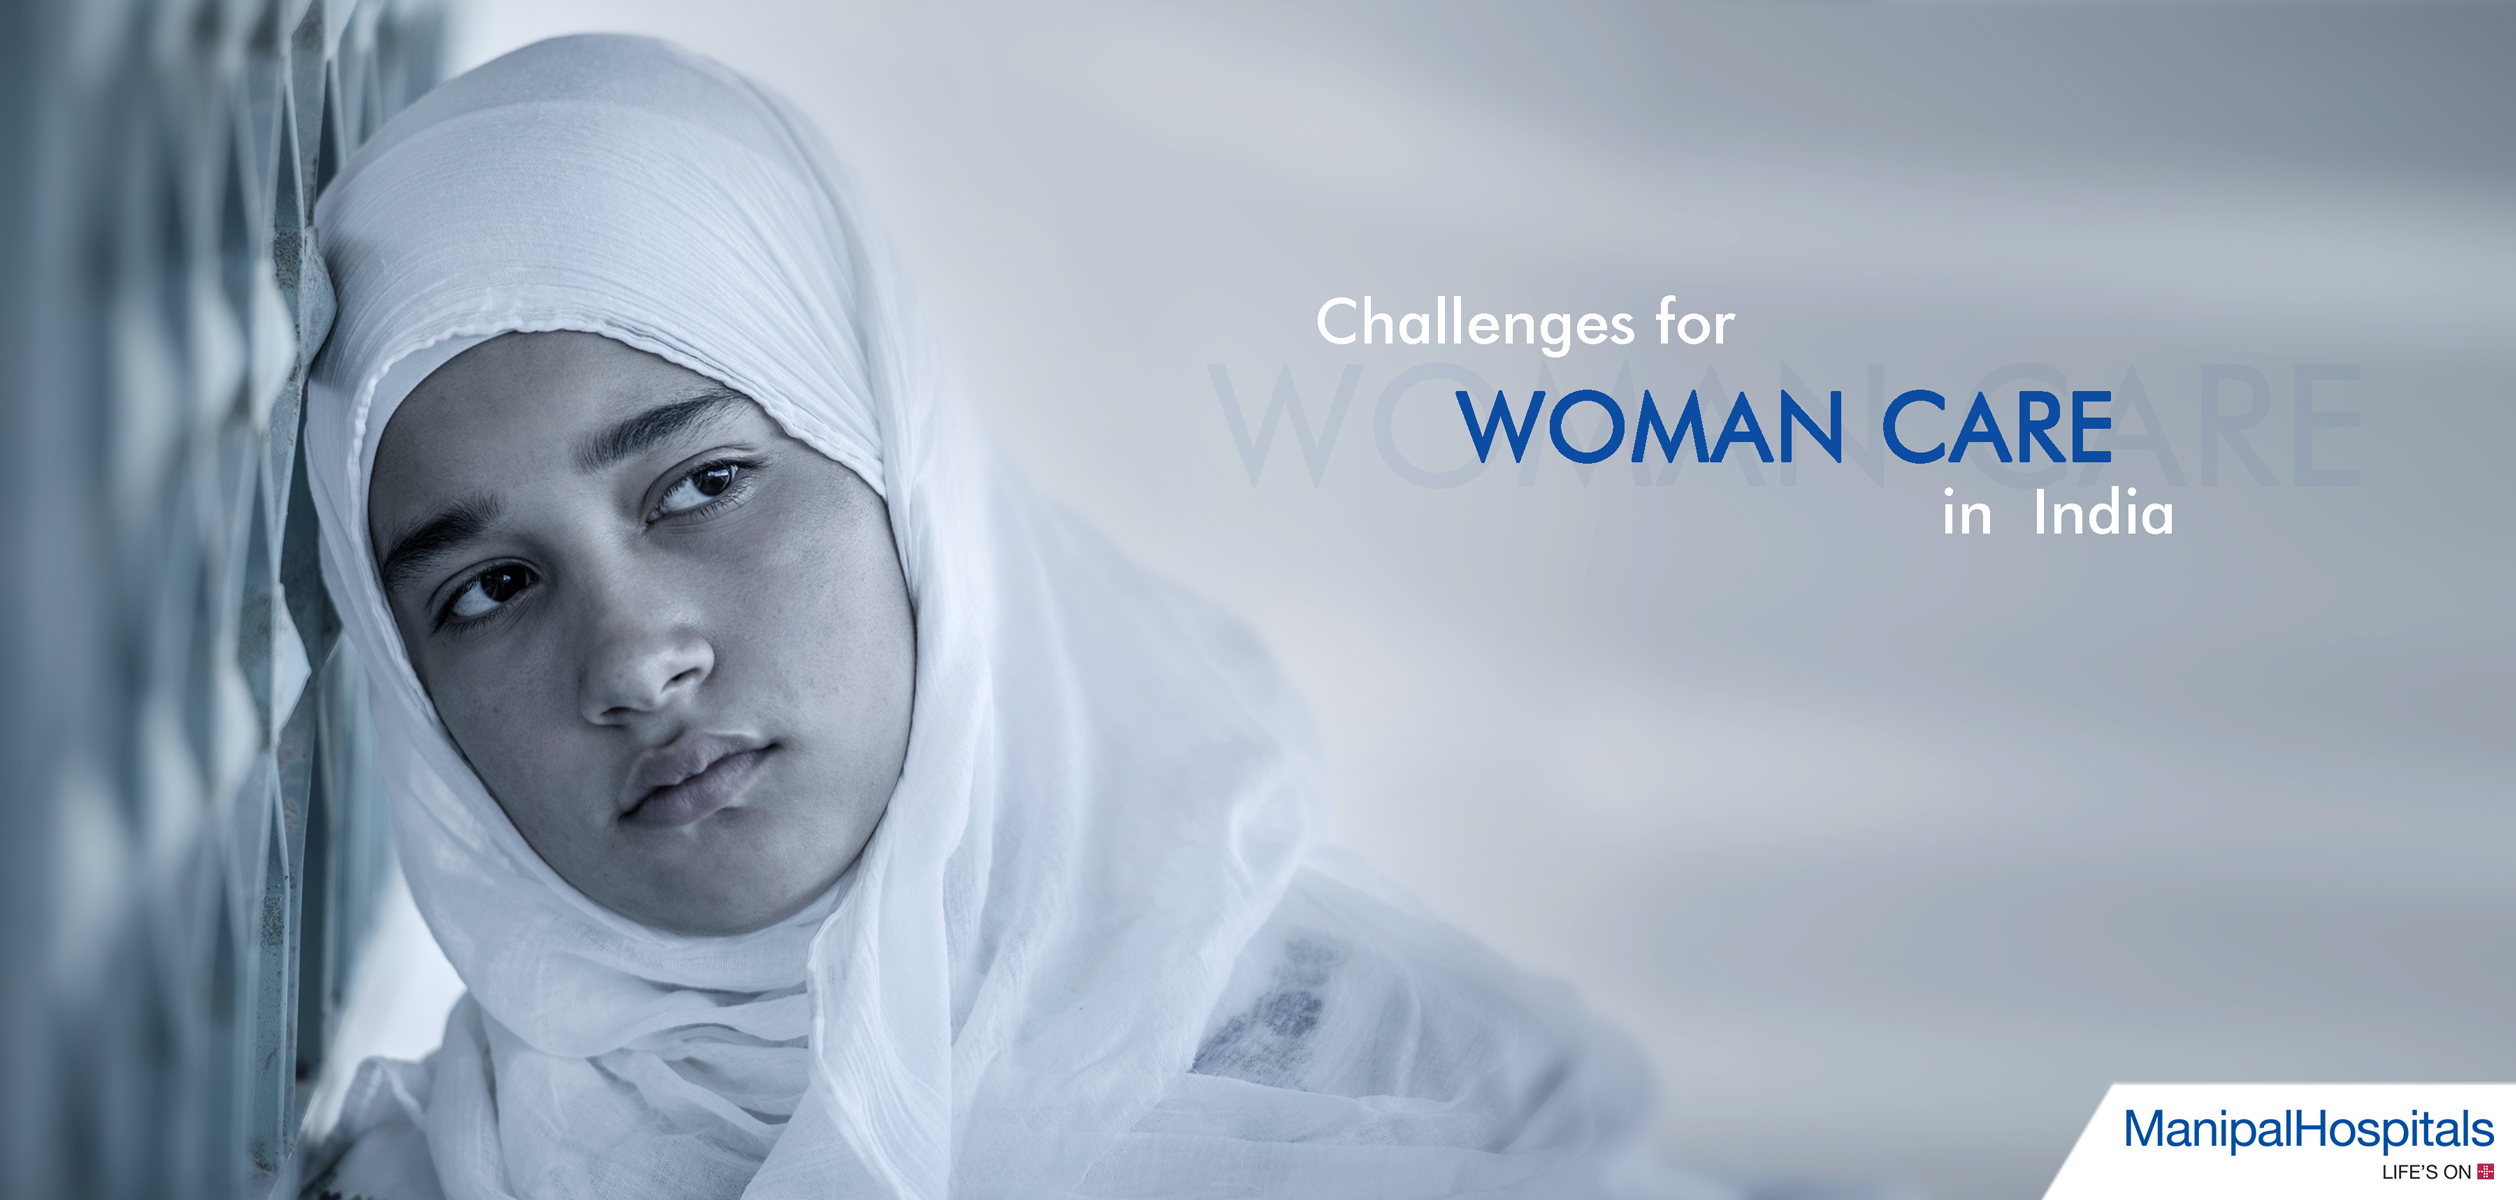 Challenges for Woman Care in India